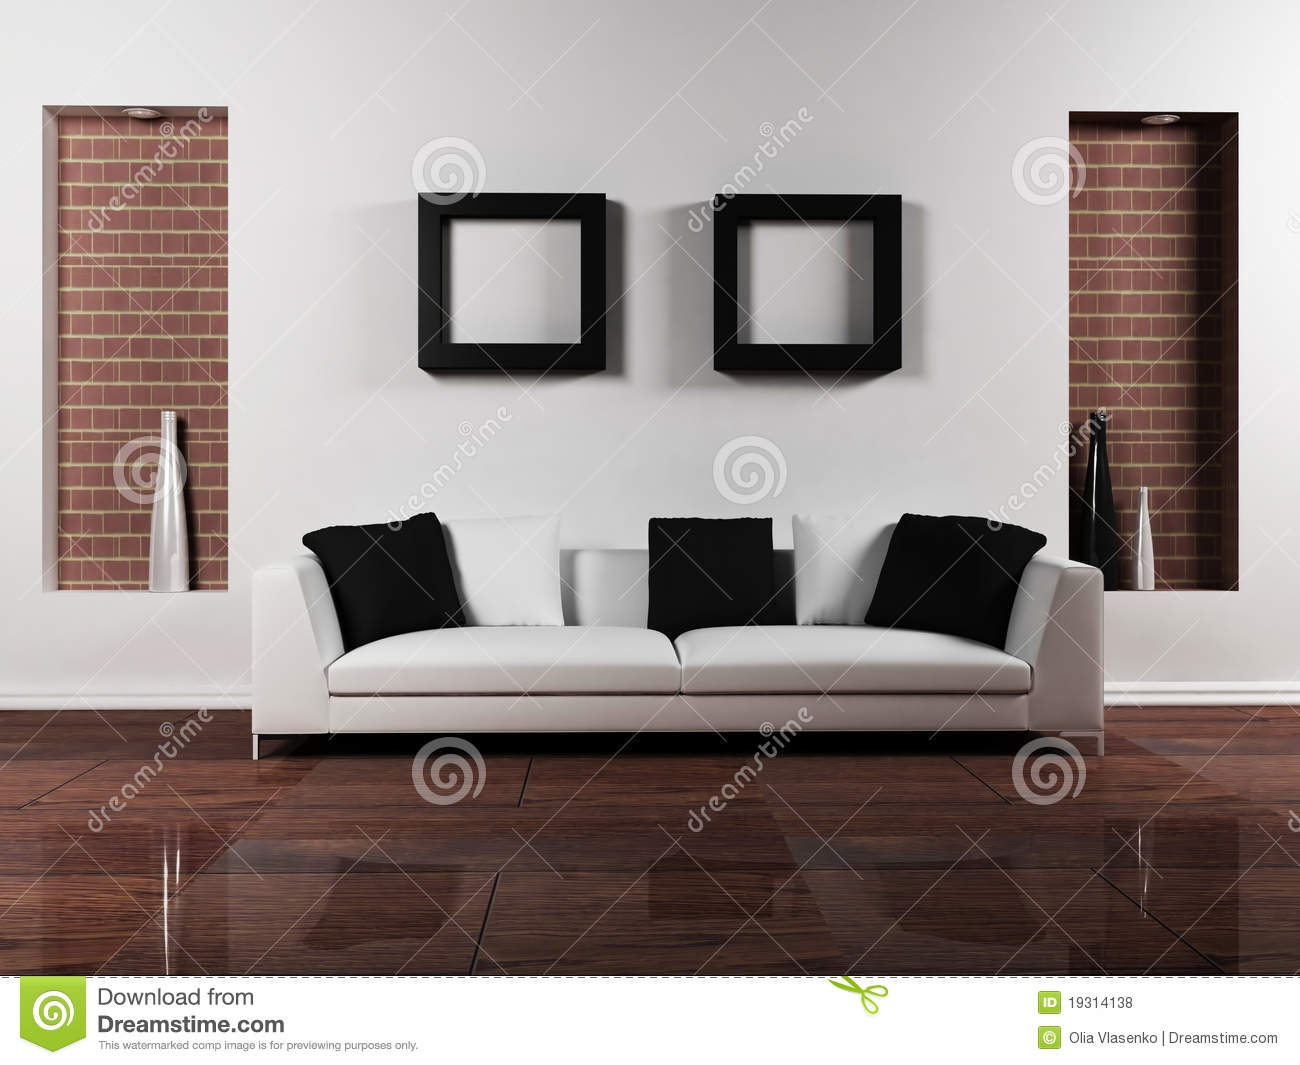 Modern interior design of living room stock illustration image 19314138 - Interior design living room modern ...